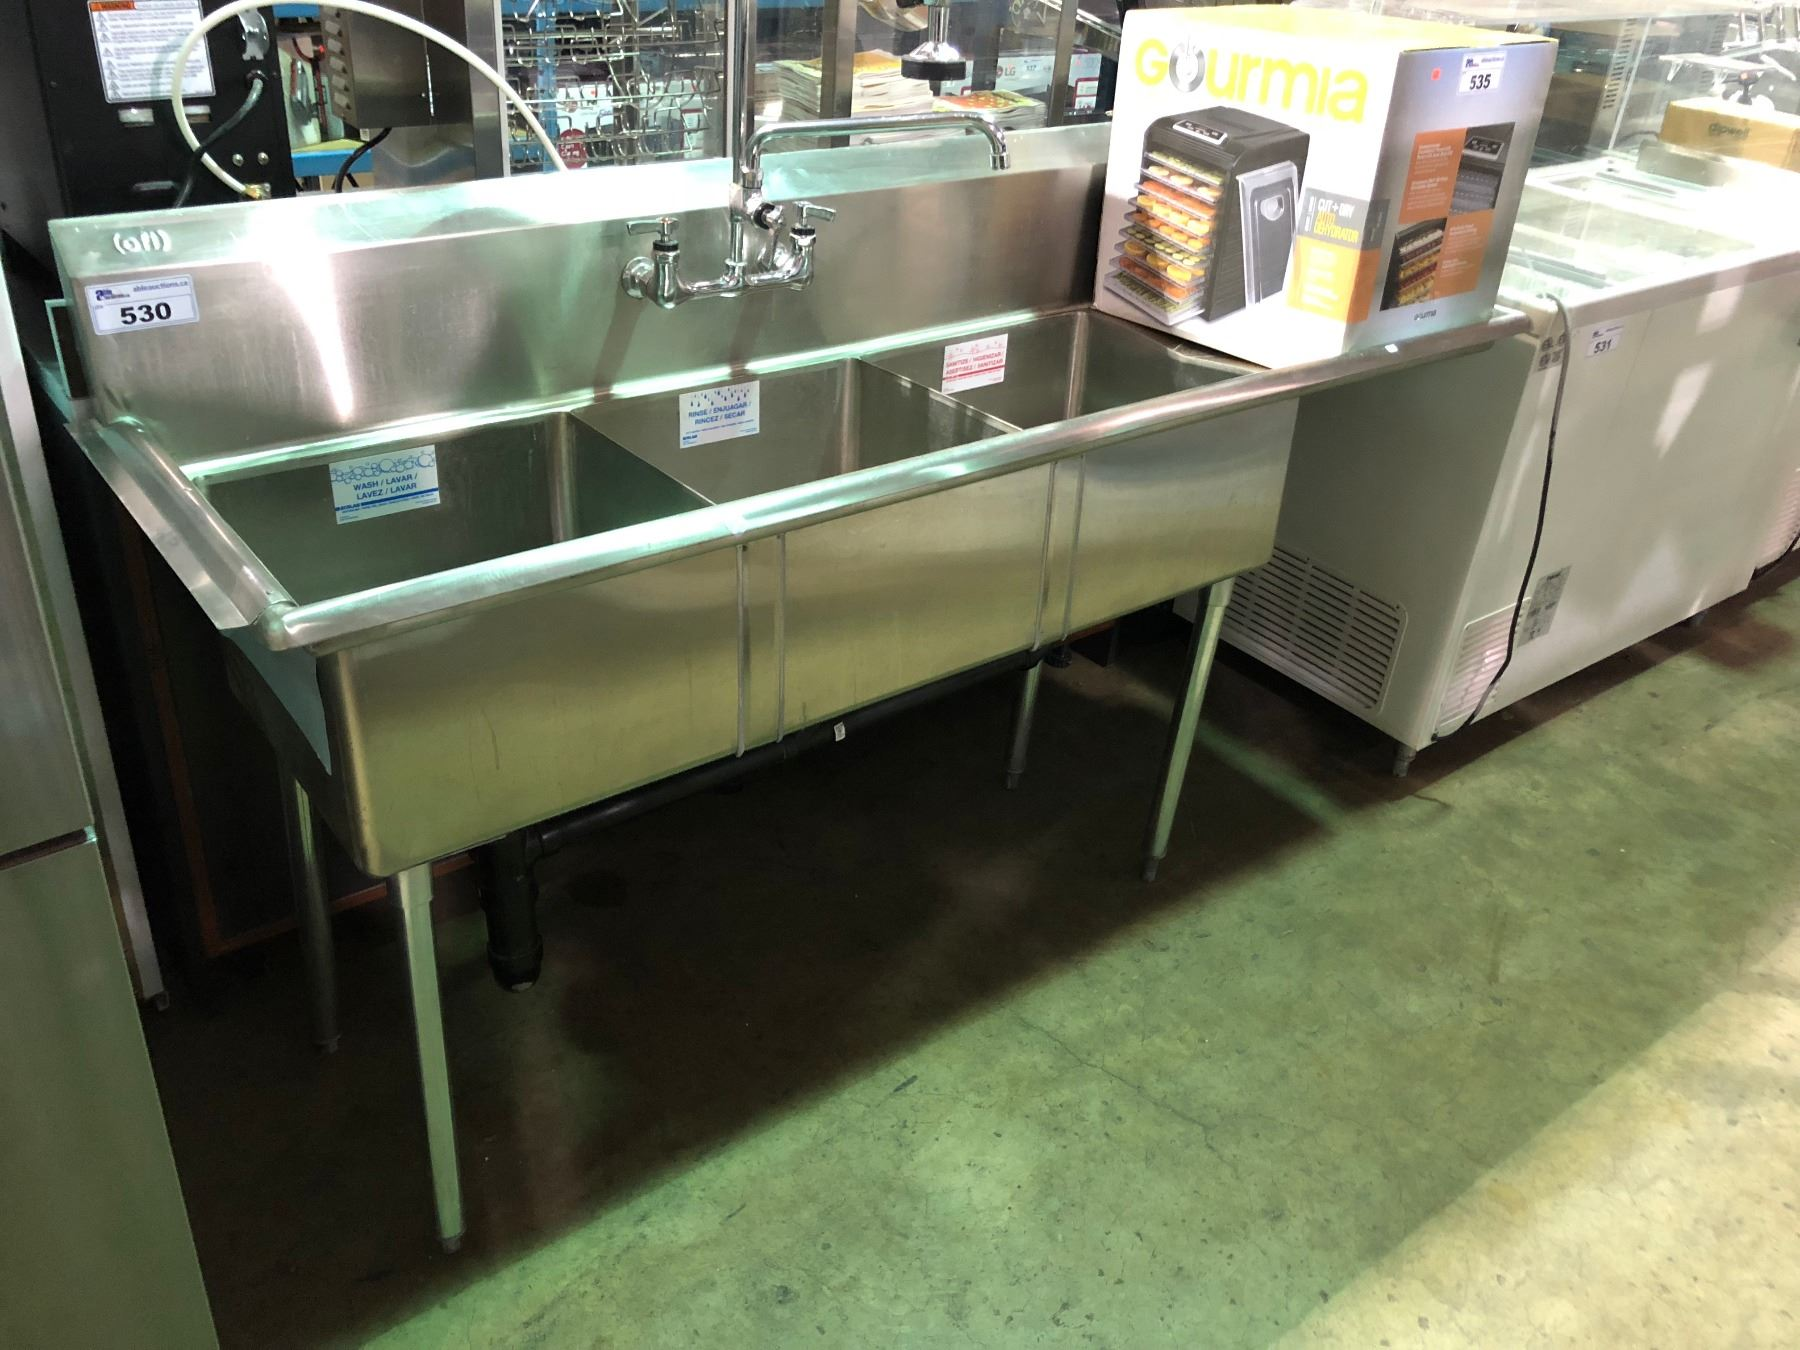 STAINLESS STEEL 3 BAY RESTAURANT SINK WITH SANIGUARD FAUCET